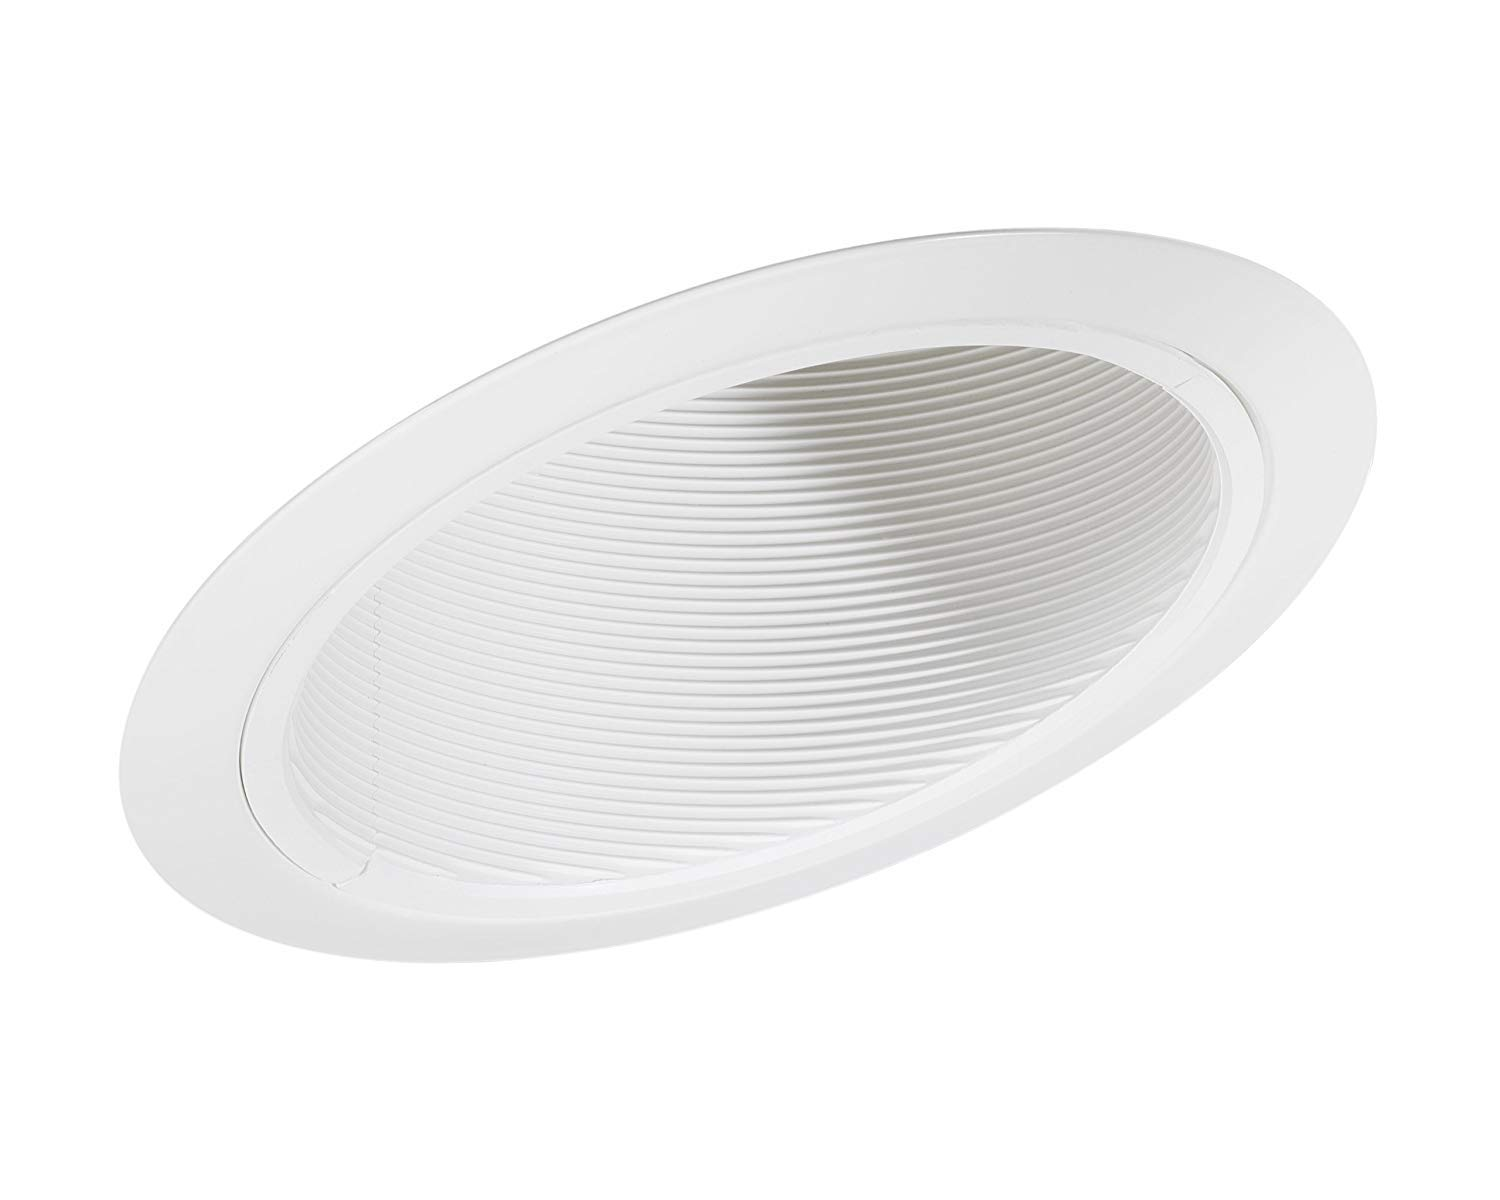 Four-Bros Lighting SB30/SLOPE/12PK Sloped Ceiling Trim Recessed Can Fixture 6 Inch Angled Stepped Baffle BR30 PAR30-For Remodel and New Construction Applications SB30/WHT/SLOPE, 12 Pack White